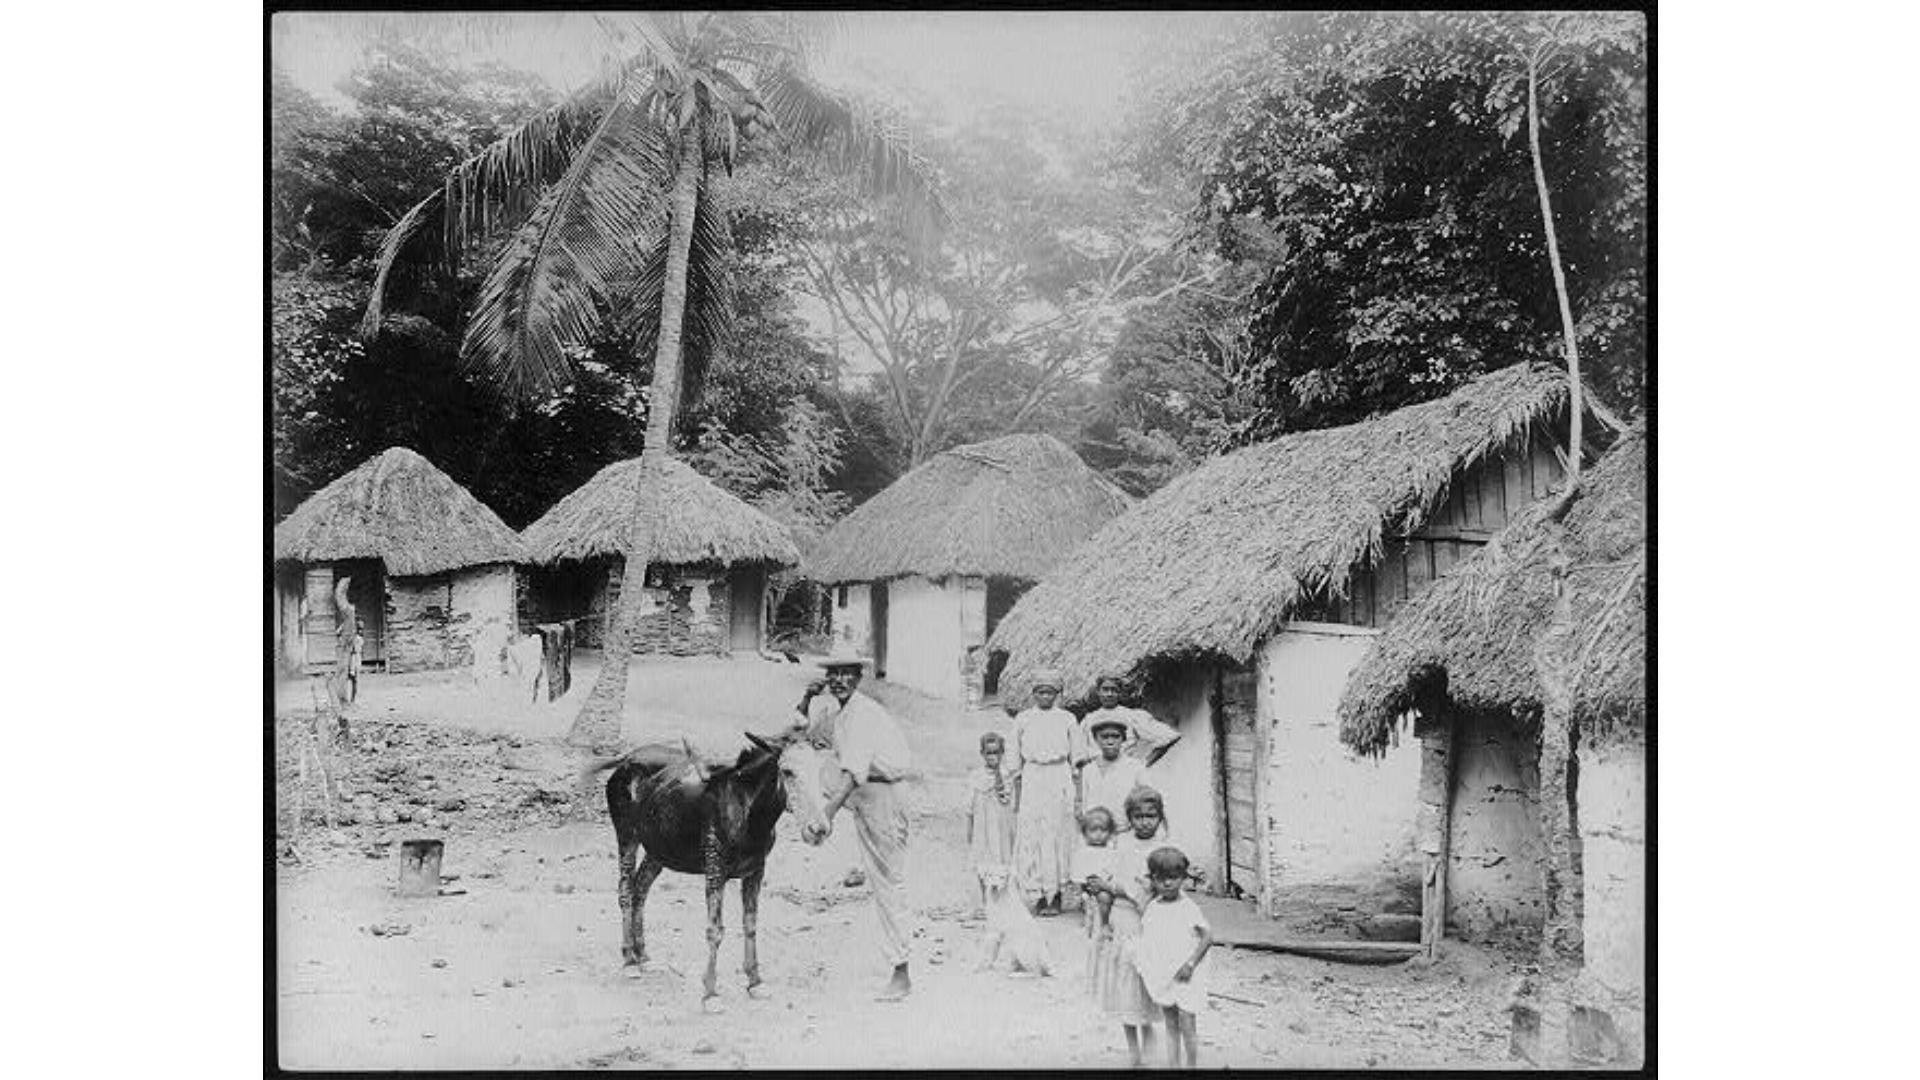 Donkey and owners - Kingston -1900 - Library of Congress Online Catalog